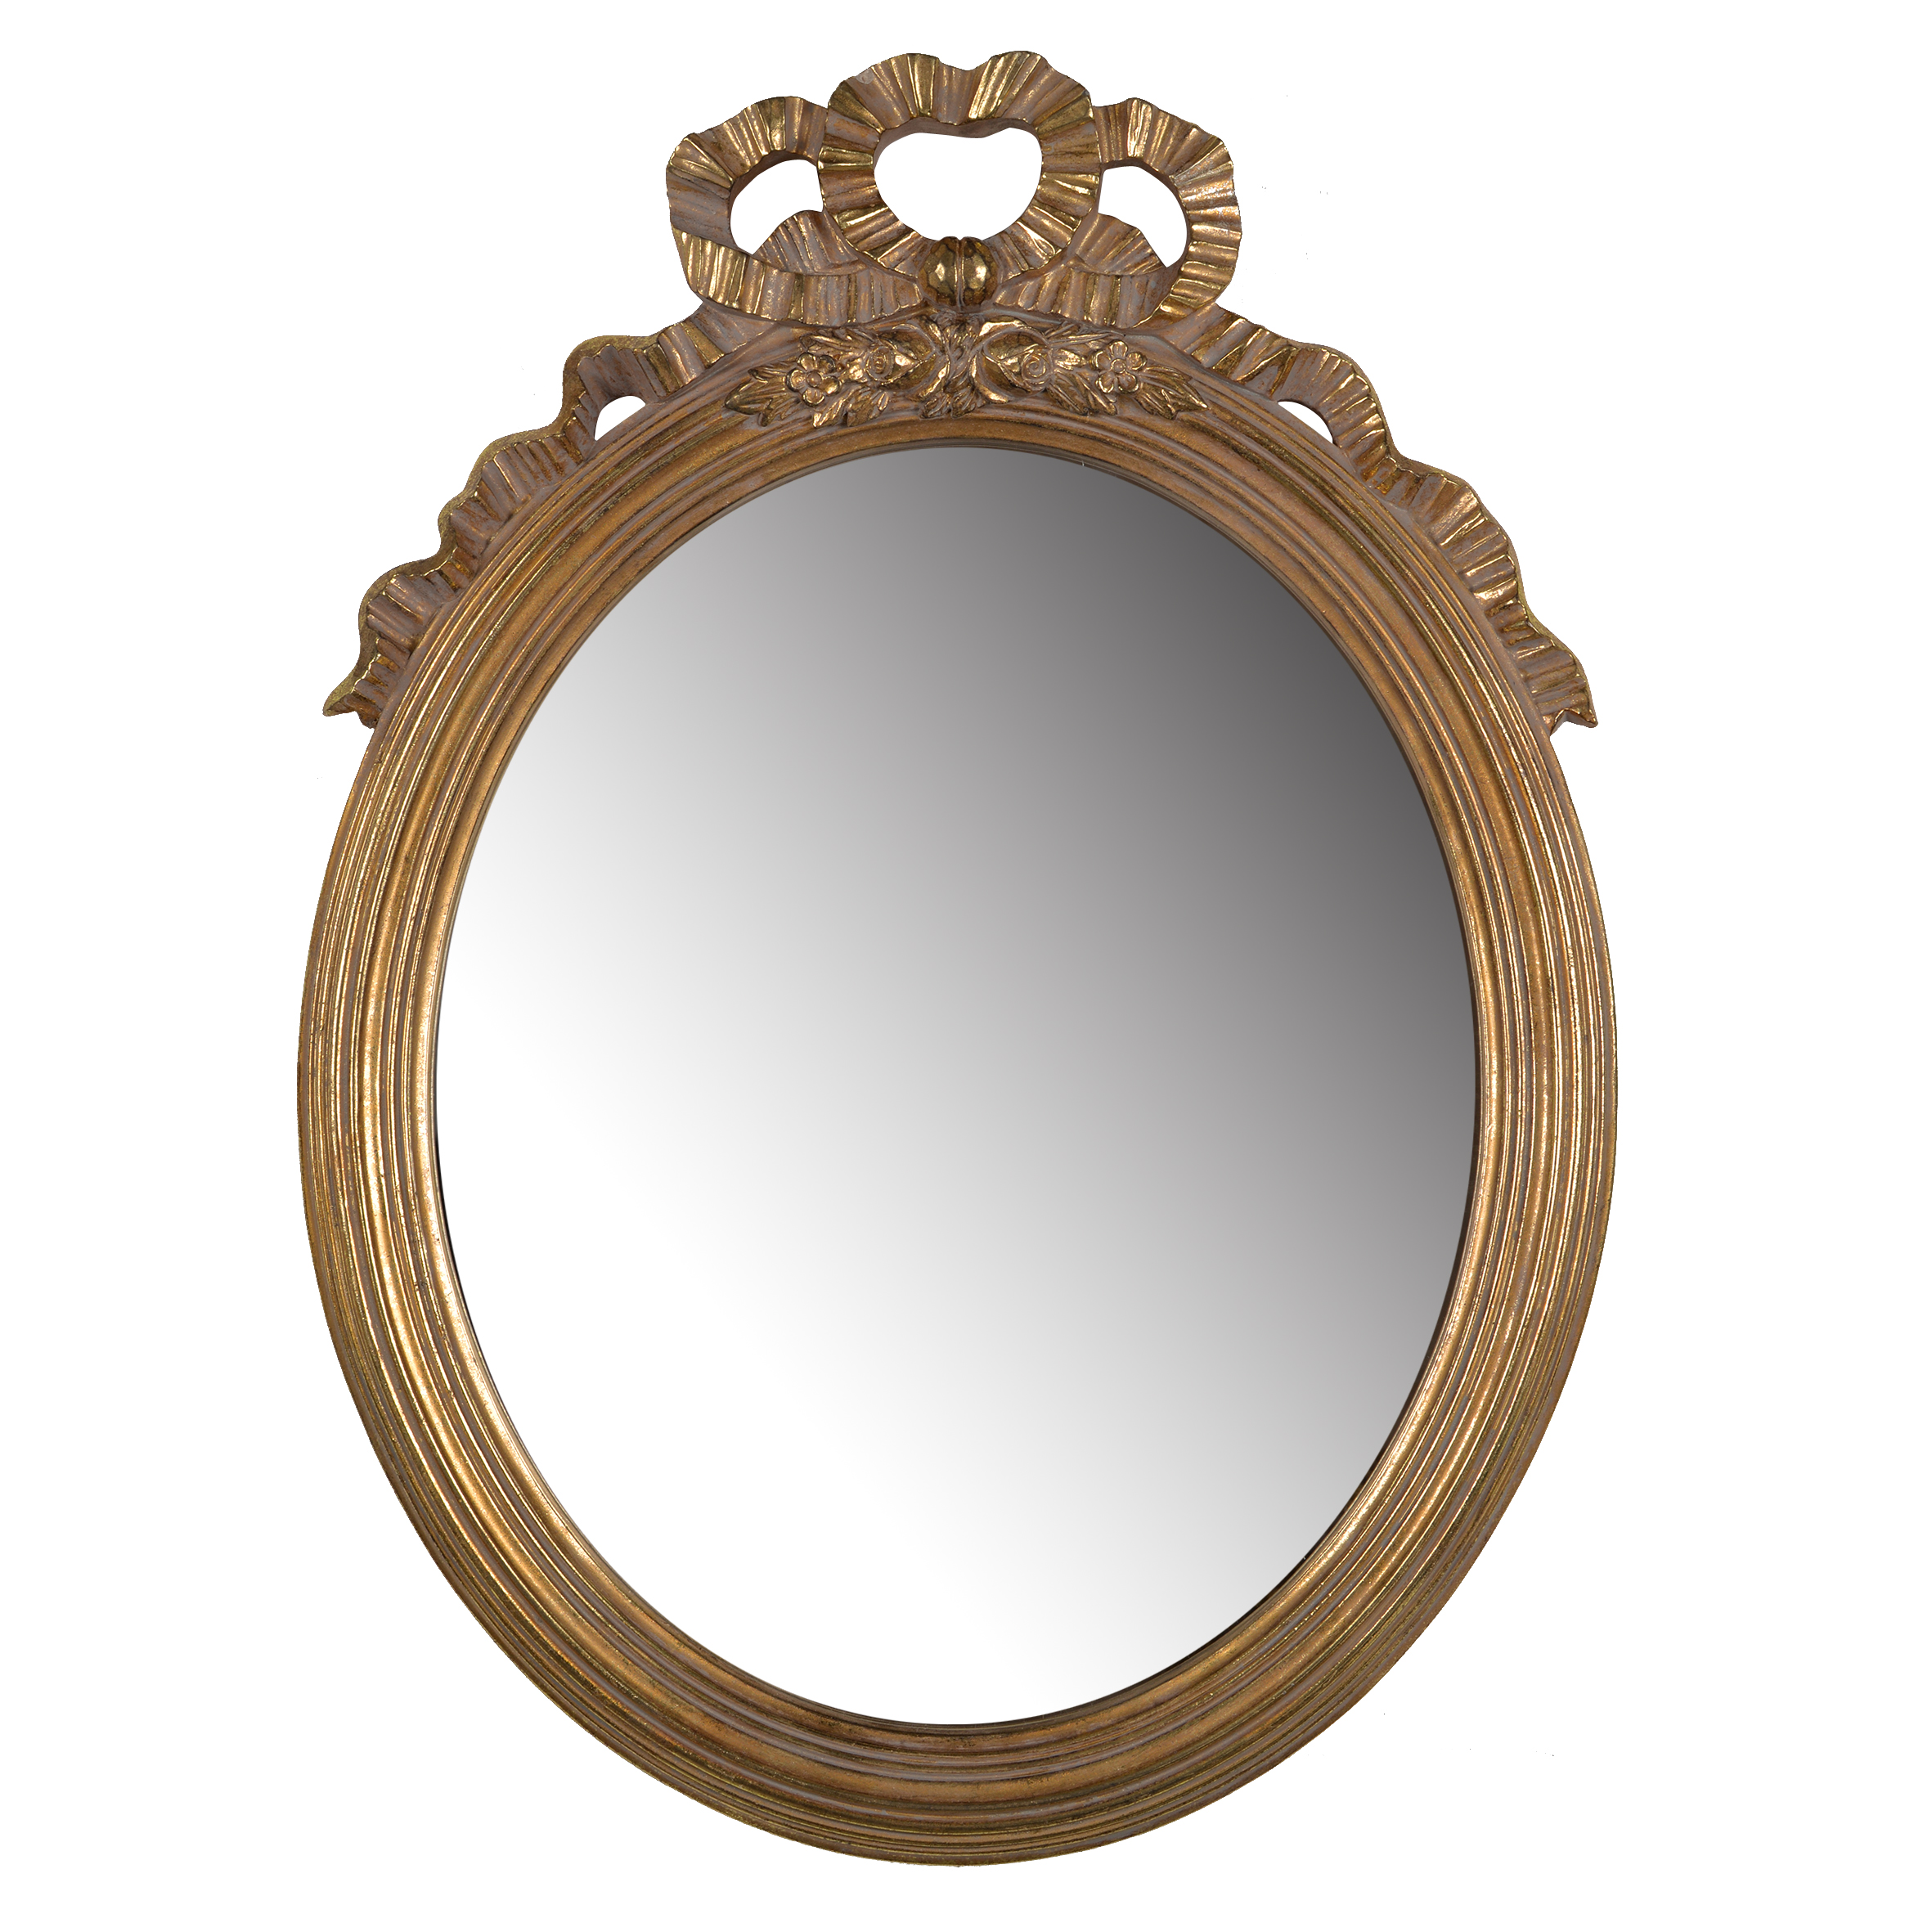 A&B Home Marquis Round Mirror, Gold by A&B Home